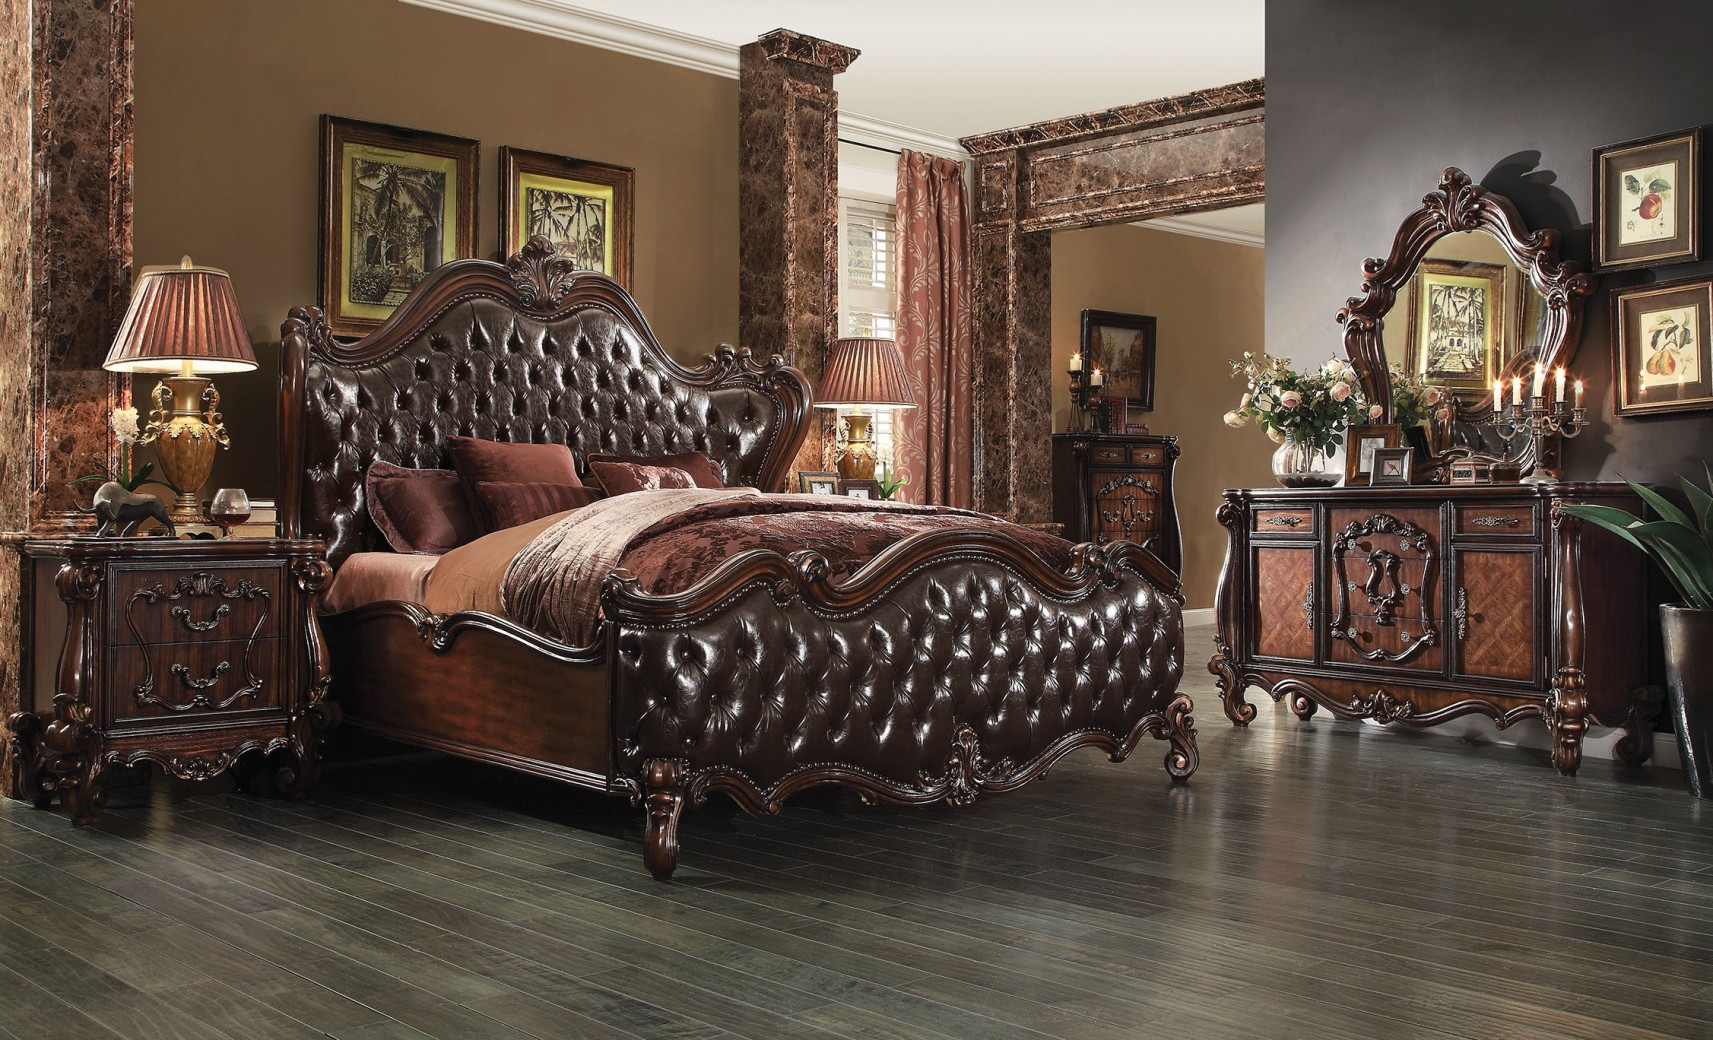 Charmant 21120 Acme Versailles Bedroom Set Collection Cherry Oak Finish 2 Tone Dark  Brown PU Upholstery